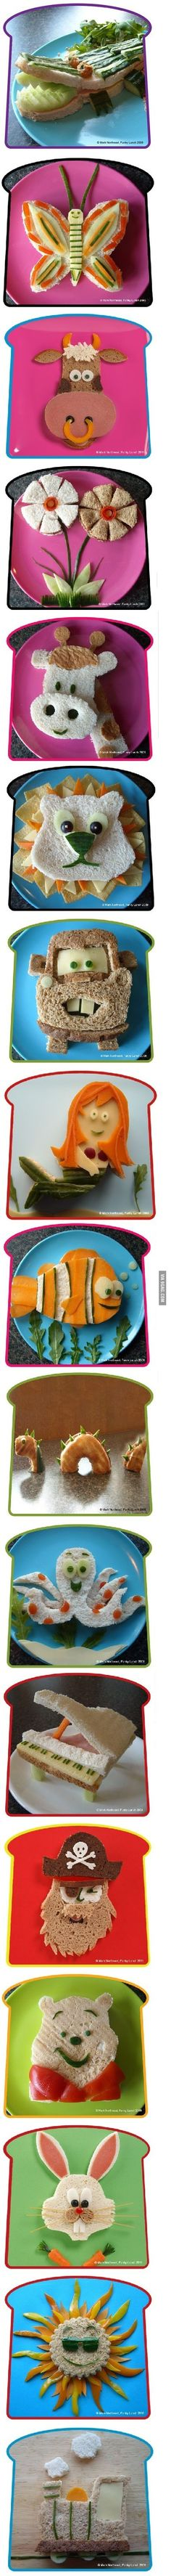 Awesome kid lunch ideas